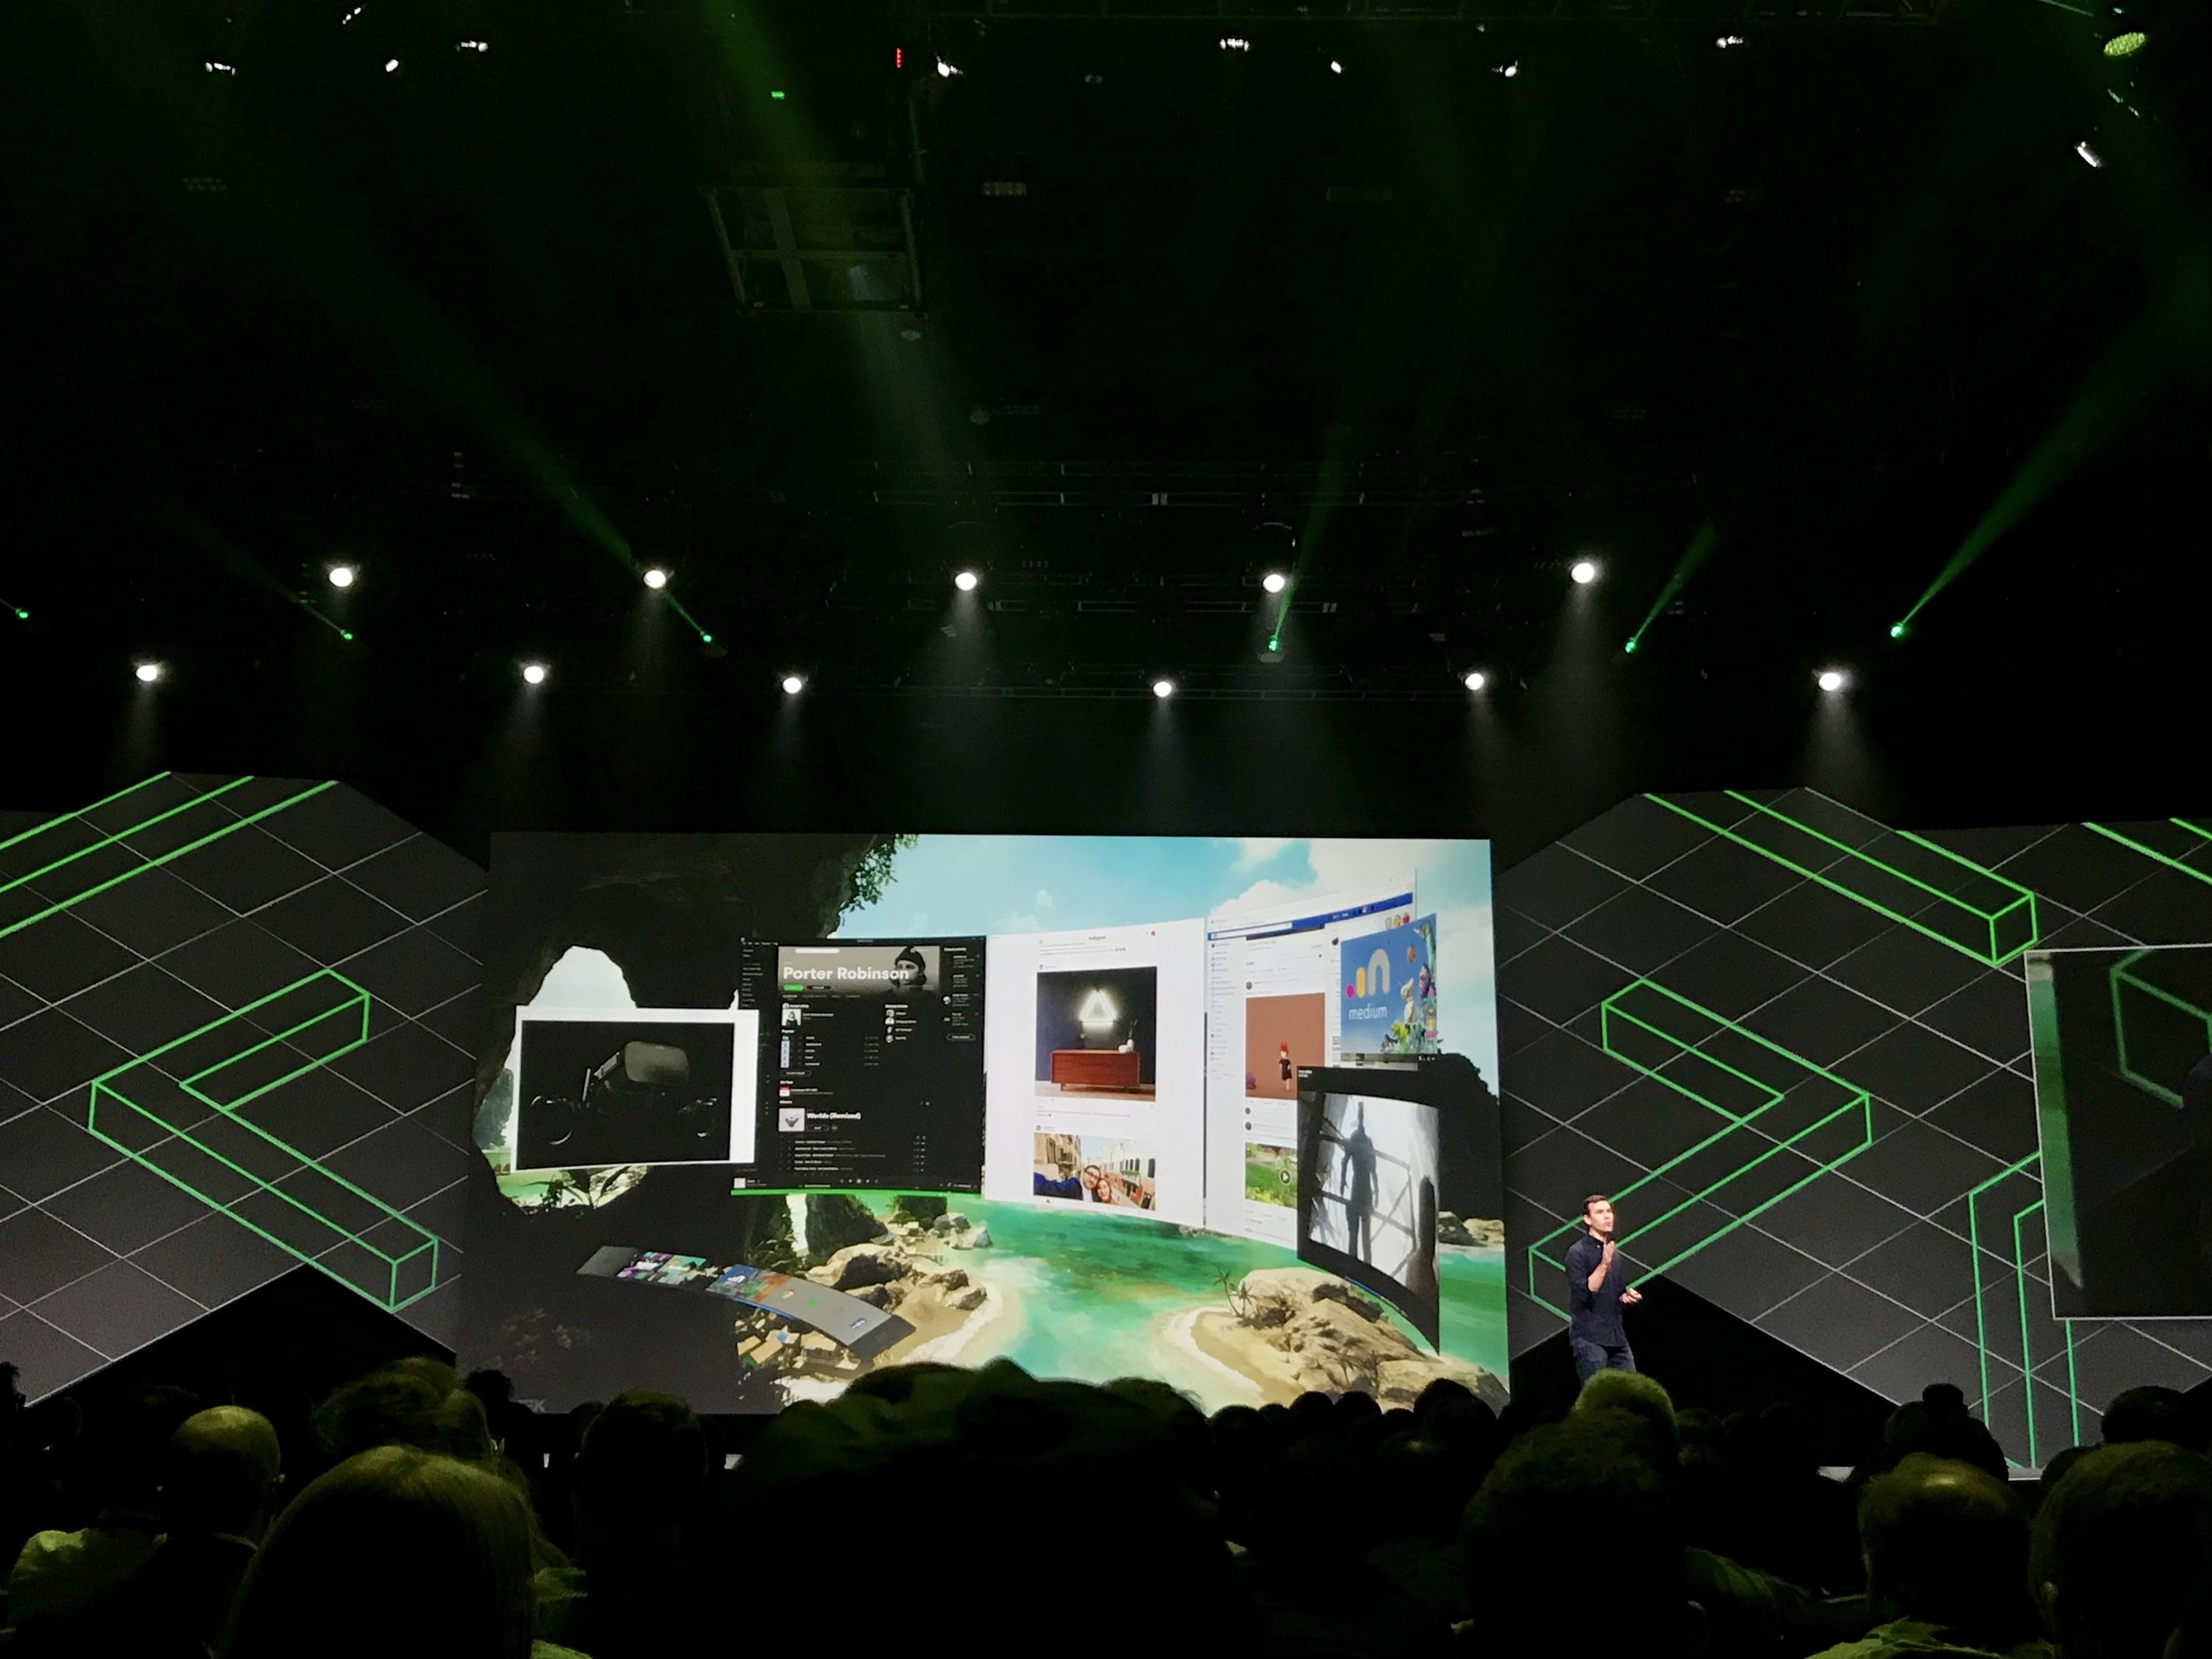 During the Keynote, Oculus introduced their new features --- Oculus Dash